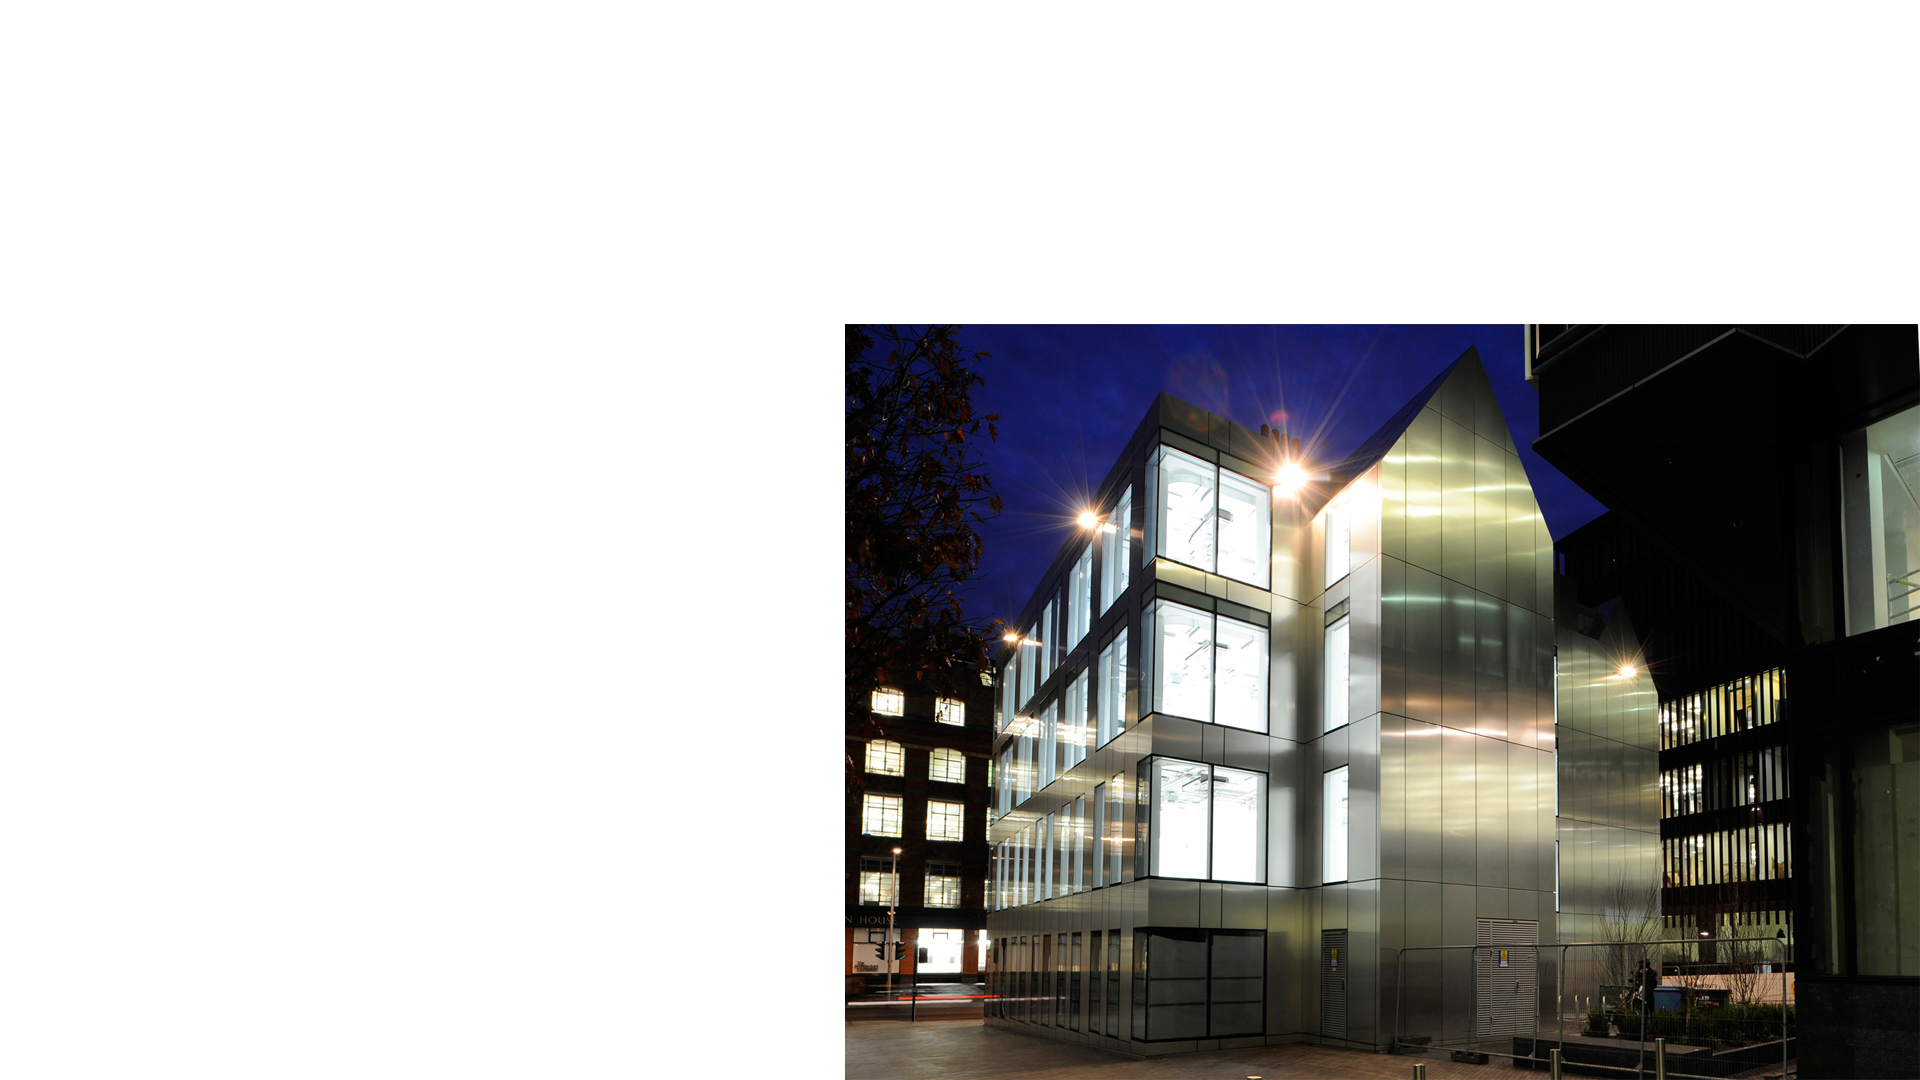 Nighttime image of stainless steel cladding to restored and remodelled former Tooley Street Fire Station